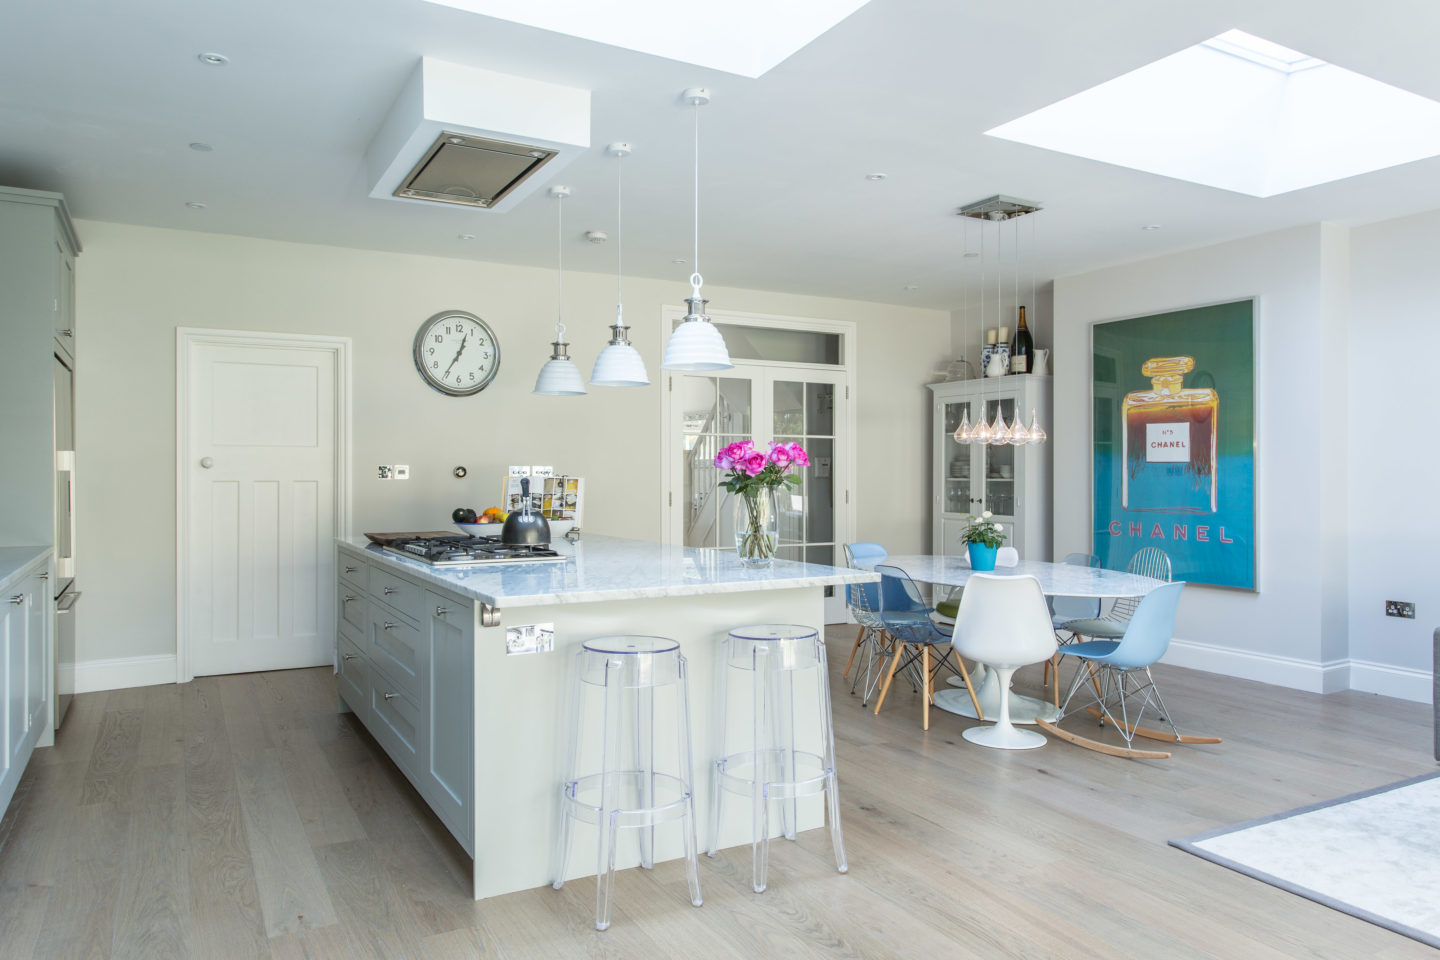 Laura Butler-Madden's Property Renovation Journey: Part 4